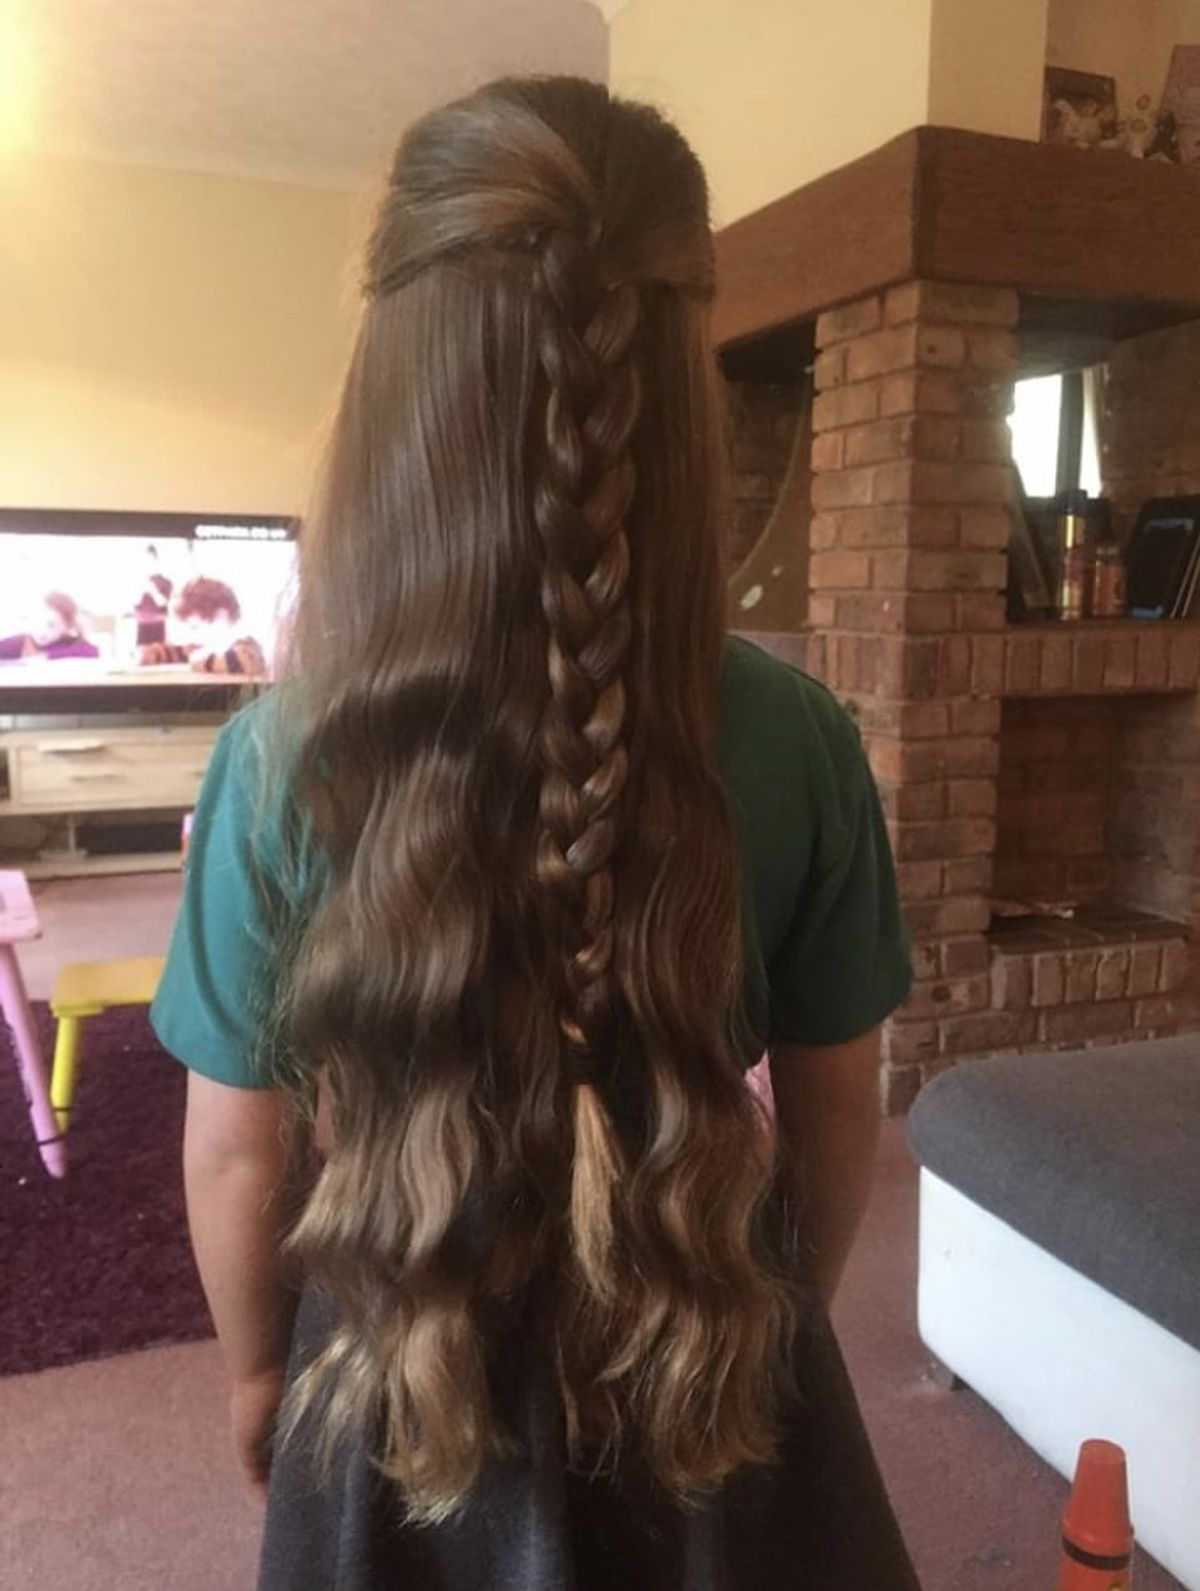 Alice's hair before it was cut